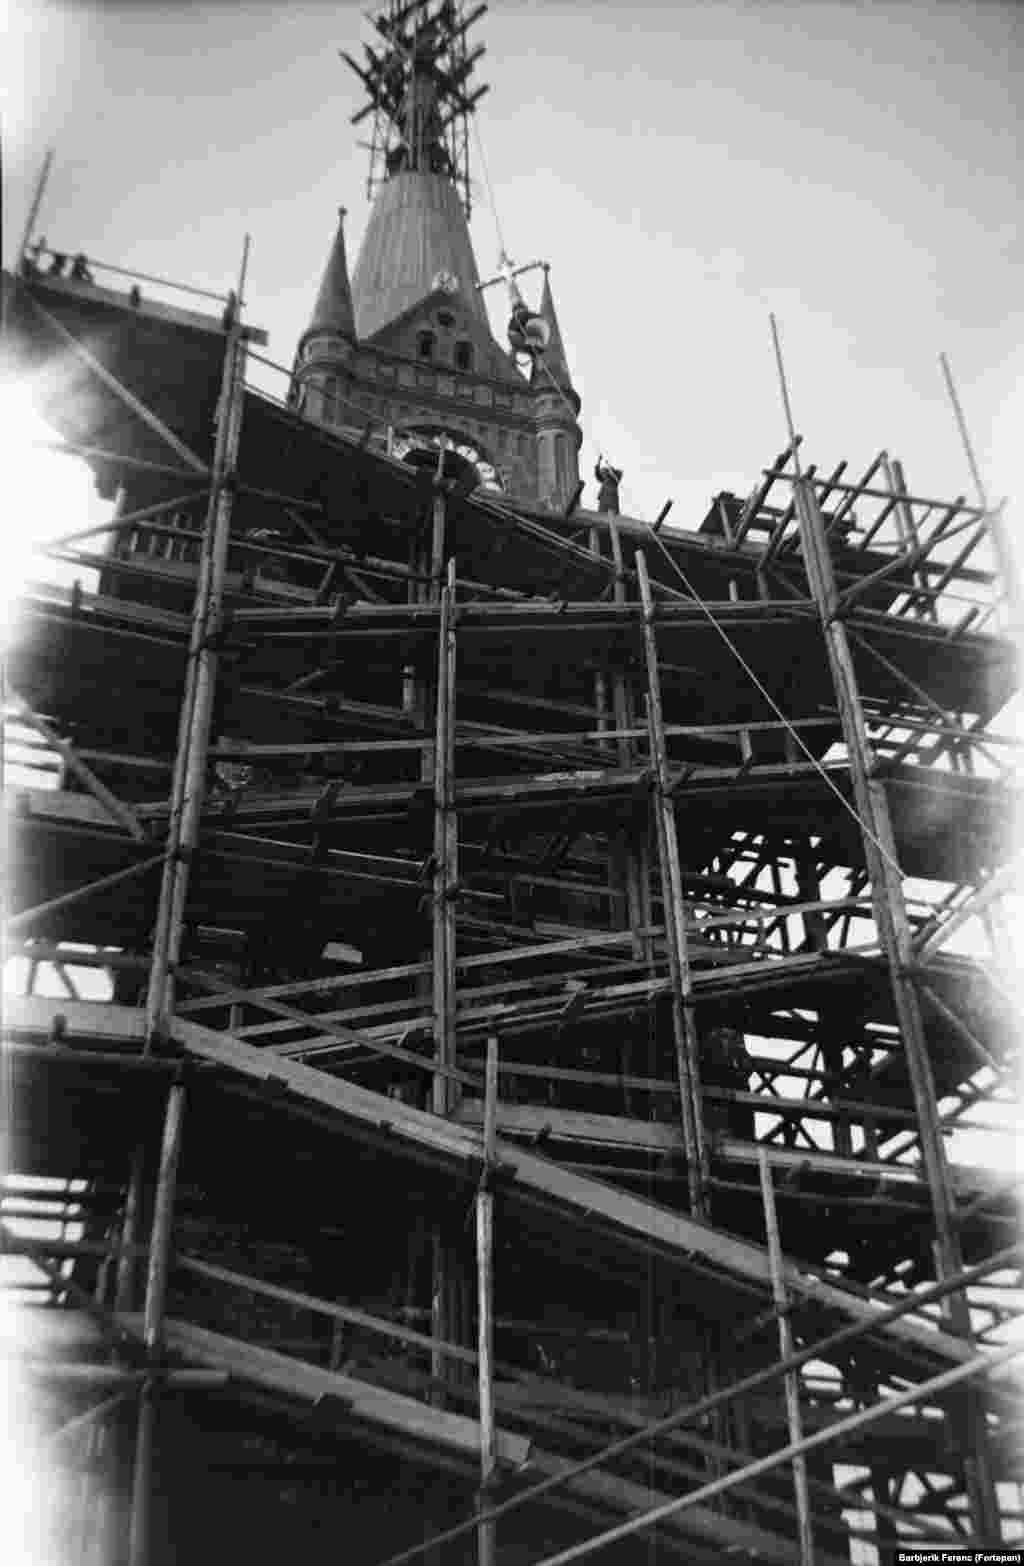 1937: A cross being raised onto the spire of the Church of the Holy Spirit as it nears completion.